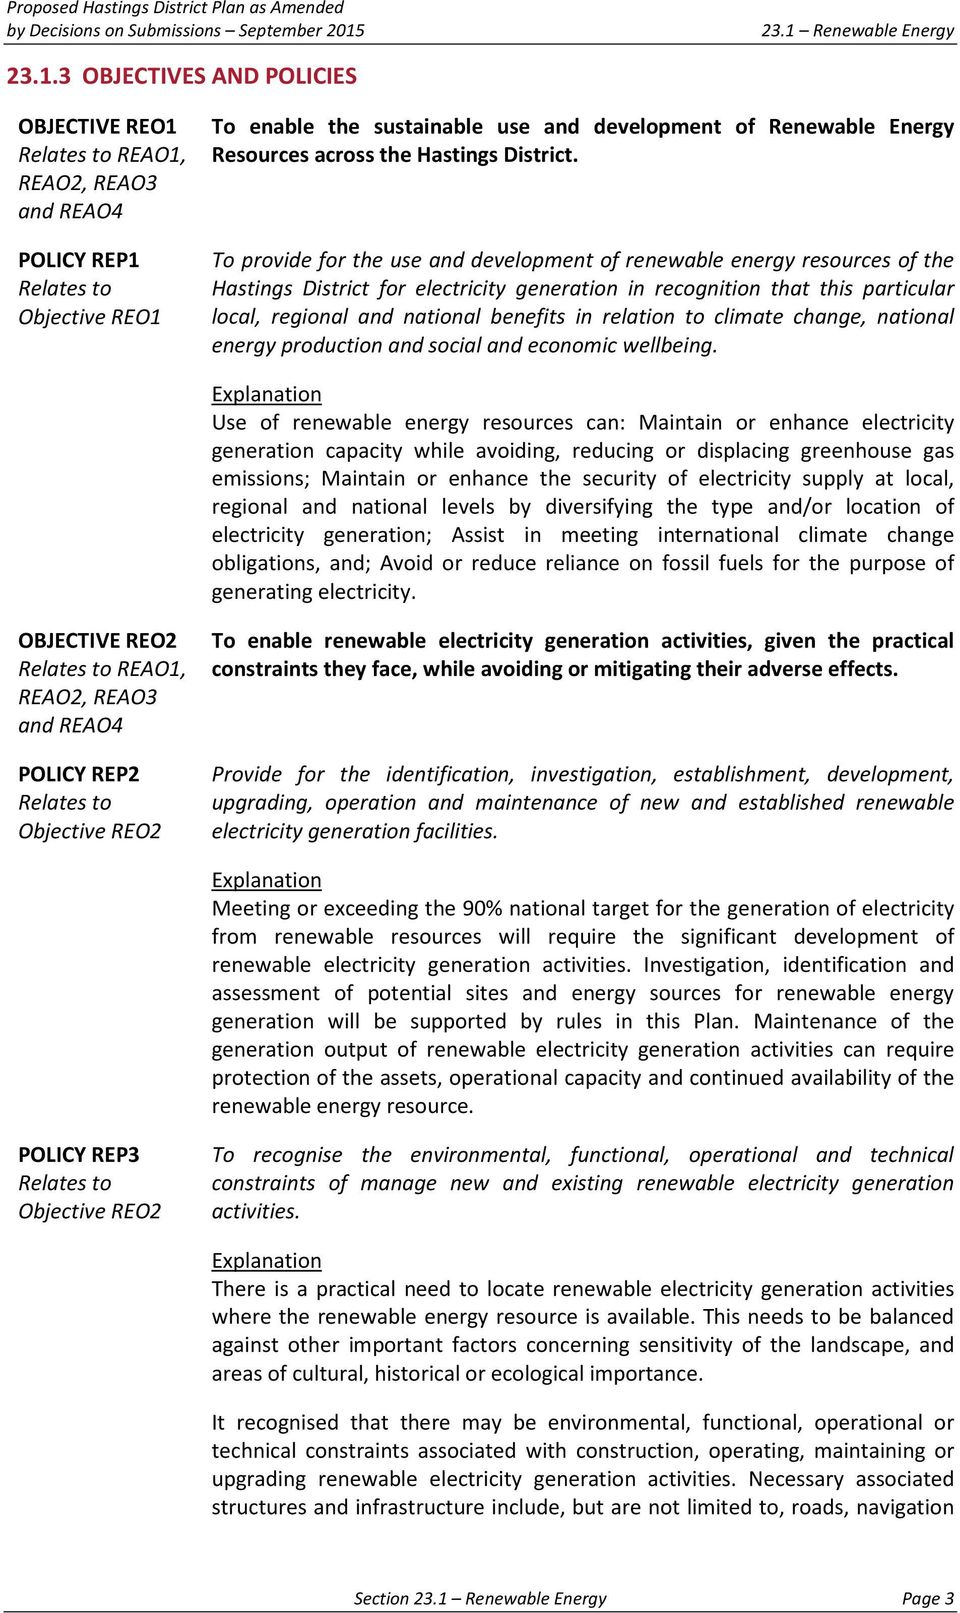 3 OBJECTIVES AND POLICIES OBJECTIVE REO1 Relates to REAO1, REAO2, REAO3 and REAO4 POLICY REP1 Relates to Objective REO1 To enable the sustainable use and development of Renewable Energy Resources